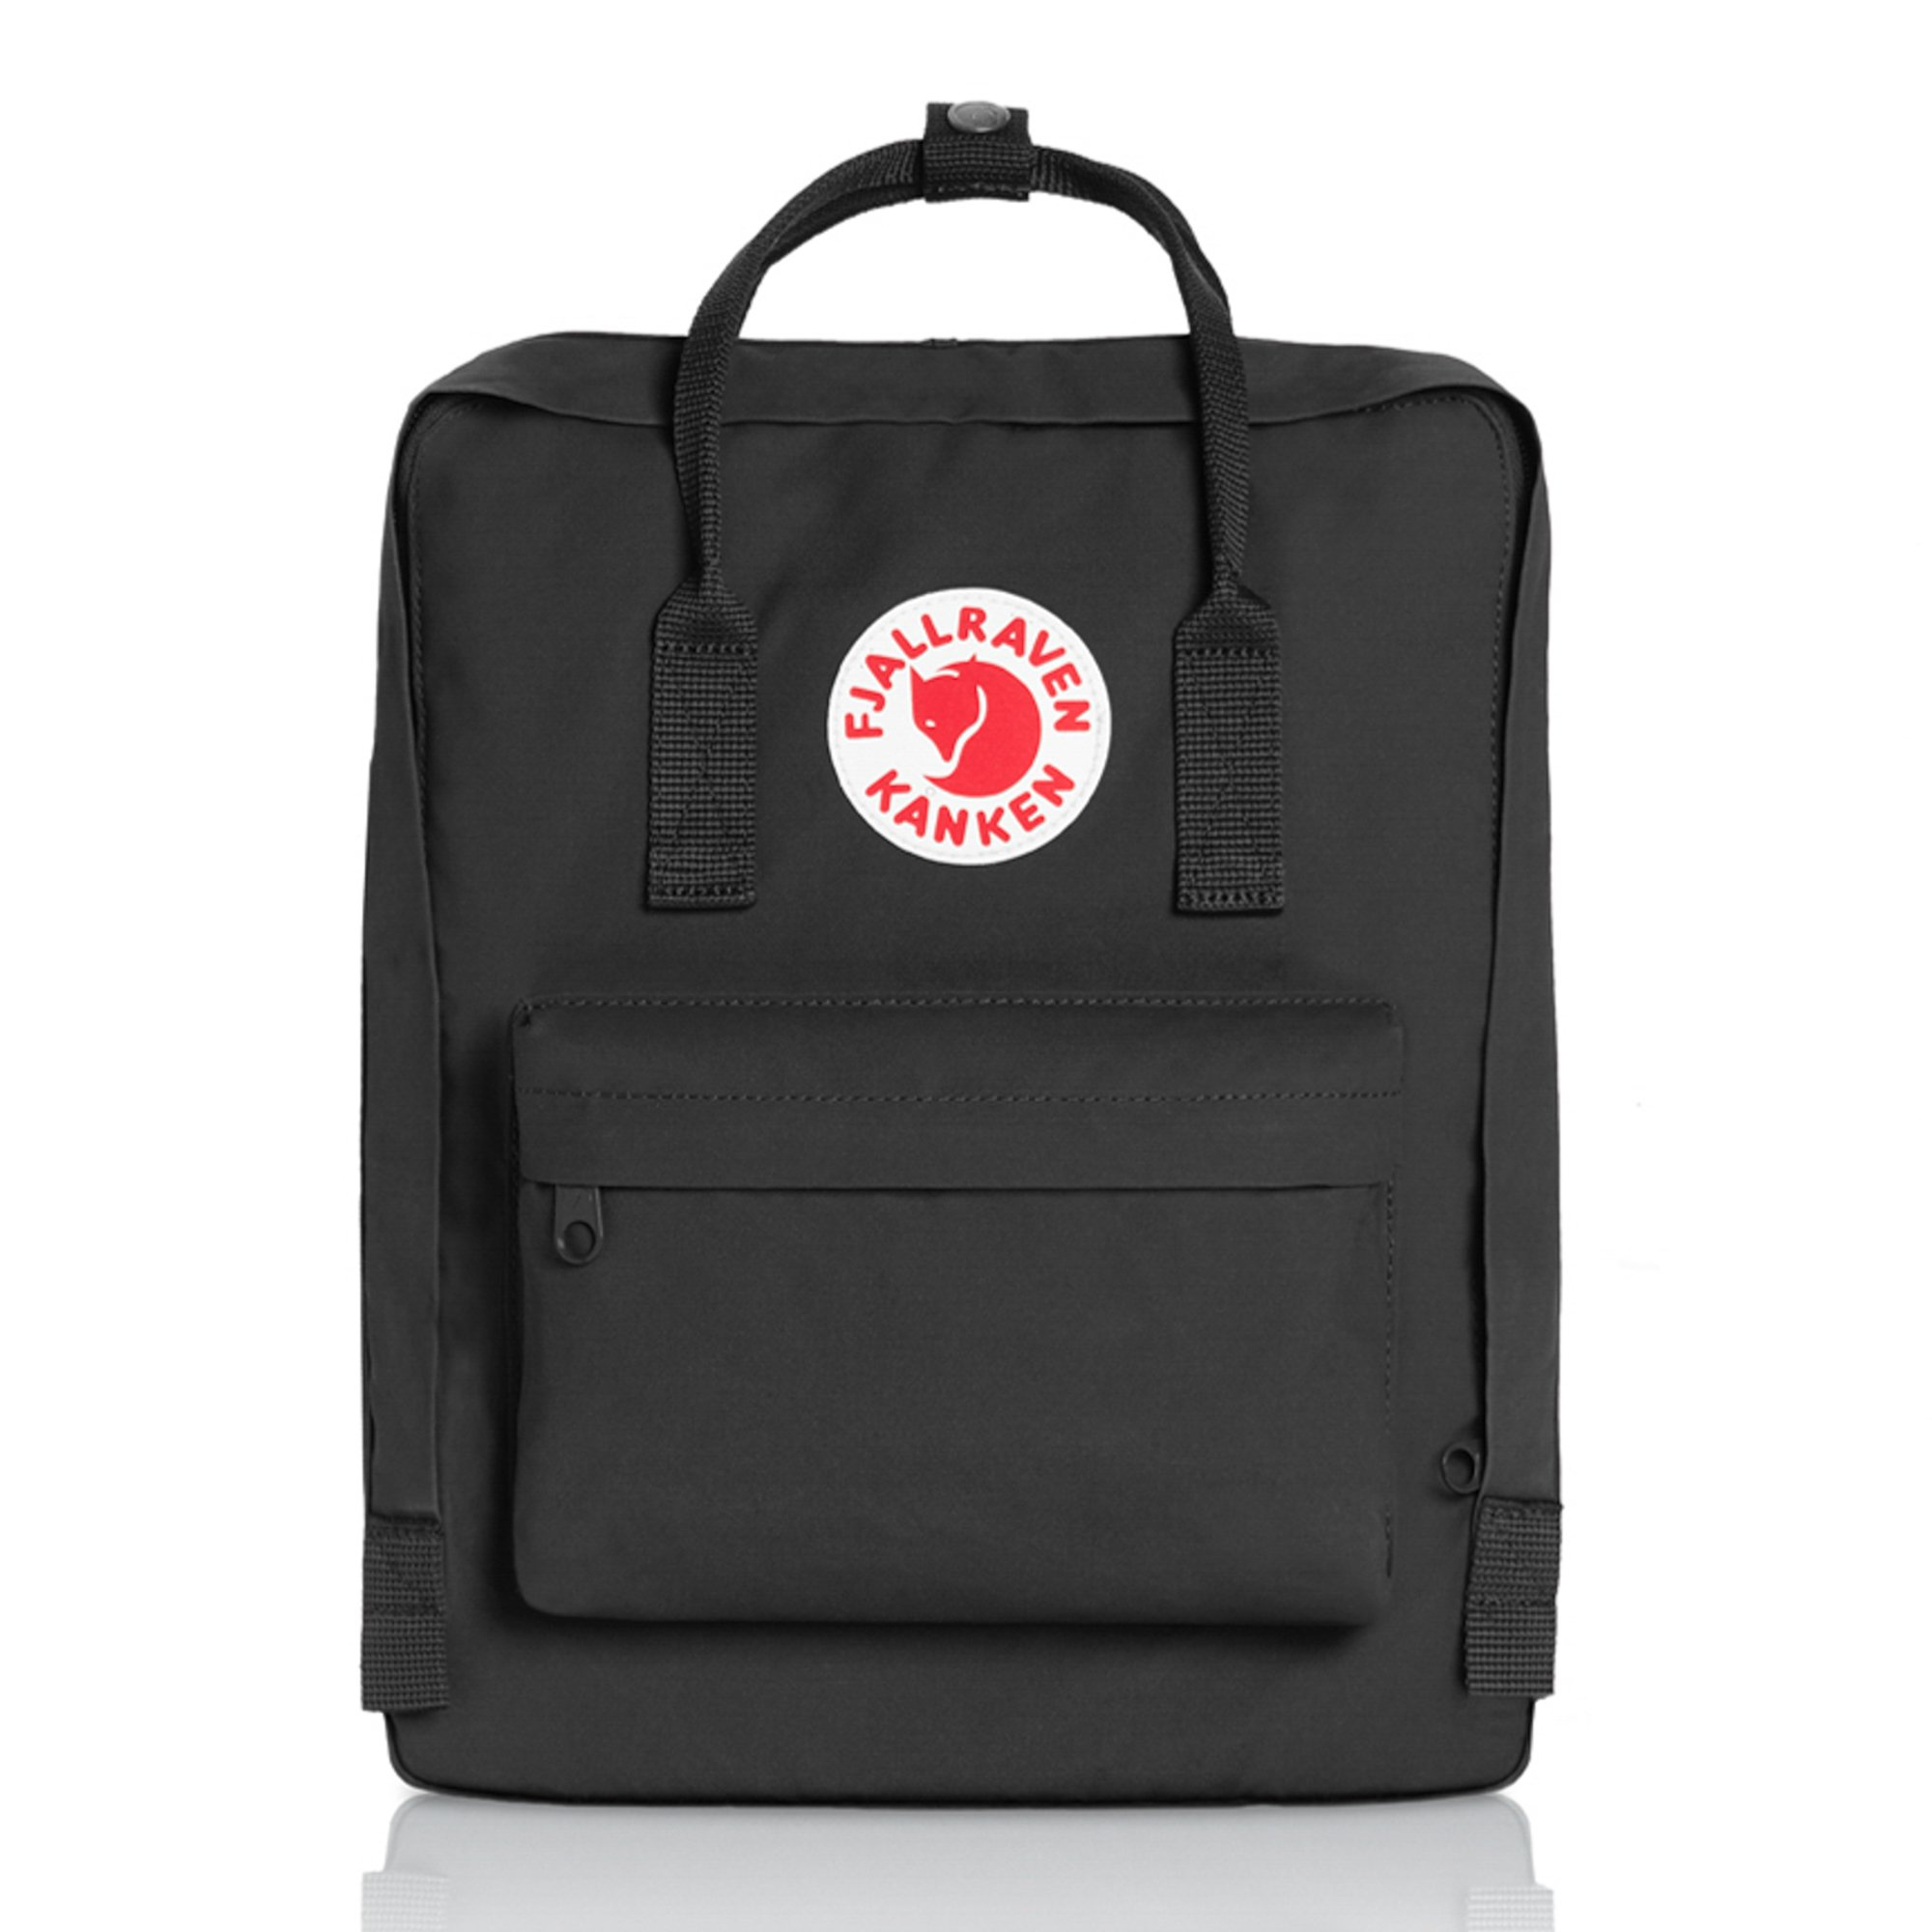 Fjallraven - Kanken Classic Pack, Heritage and Responsibility Since 1960, One Size,Black